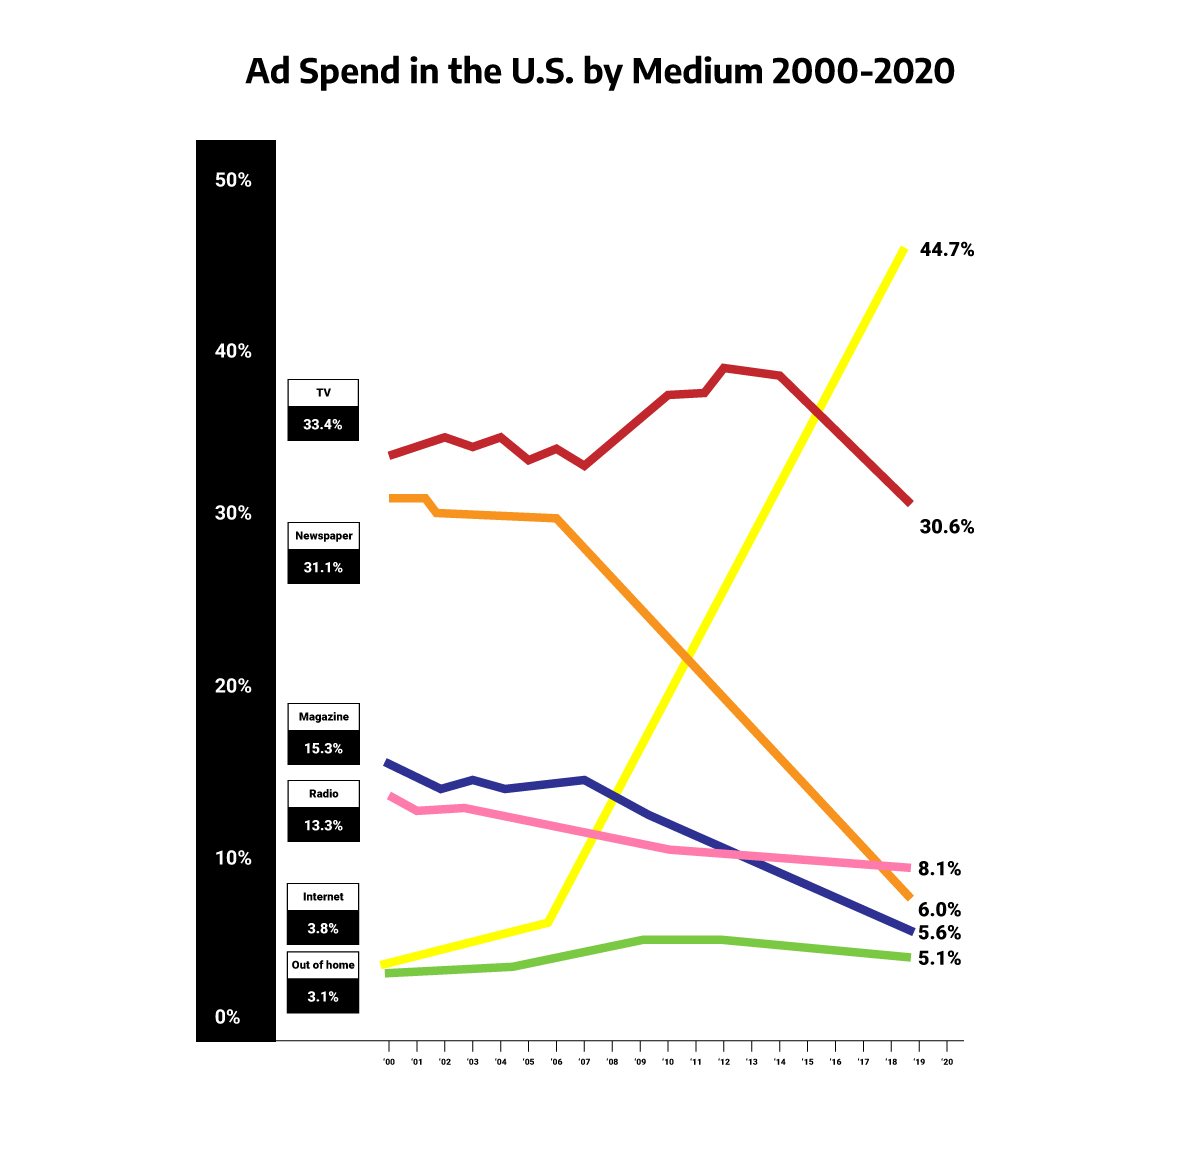 a graph illustrating ad spend in the us by medium between 2000 and 2020